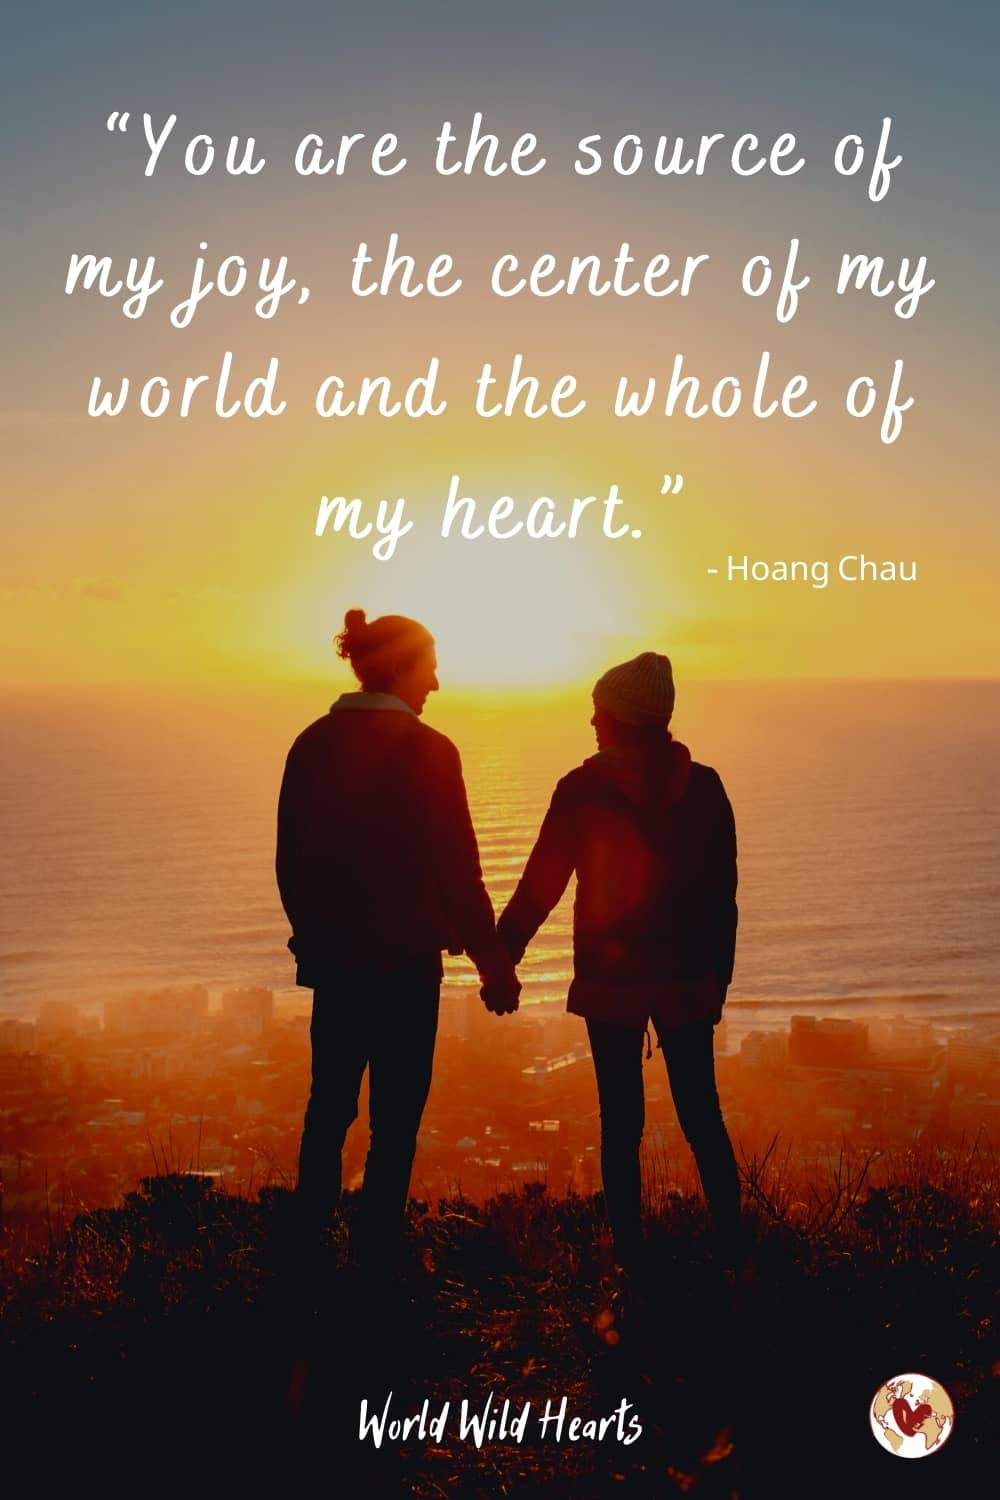 Love travel quote for couples trip